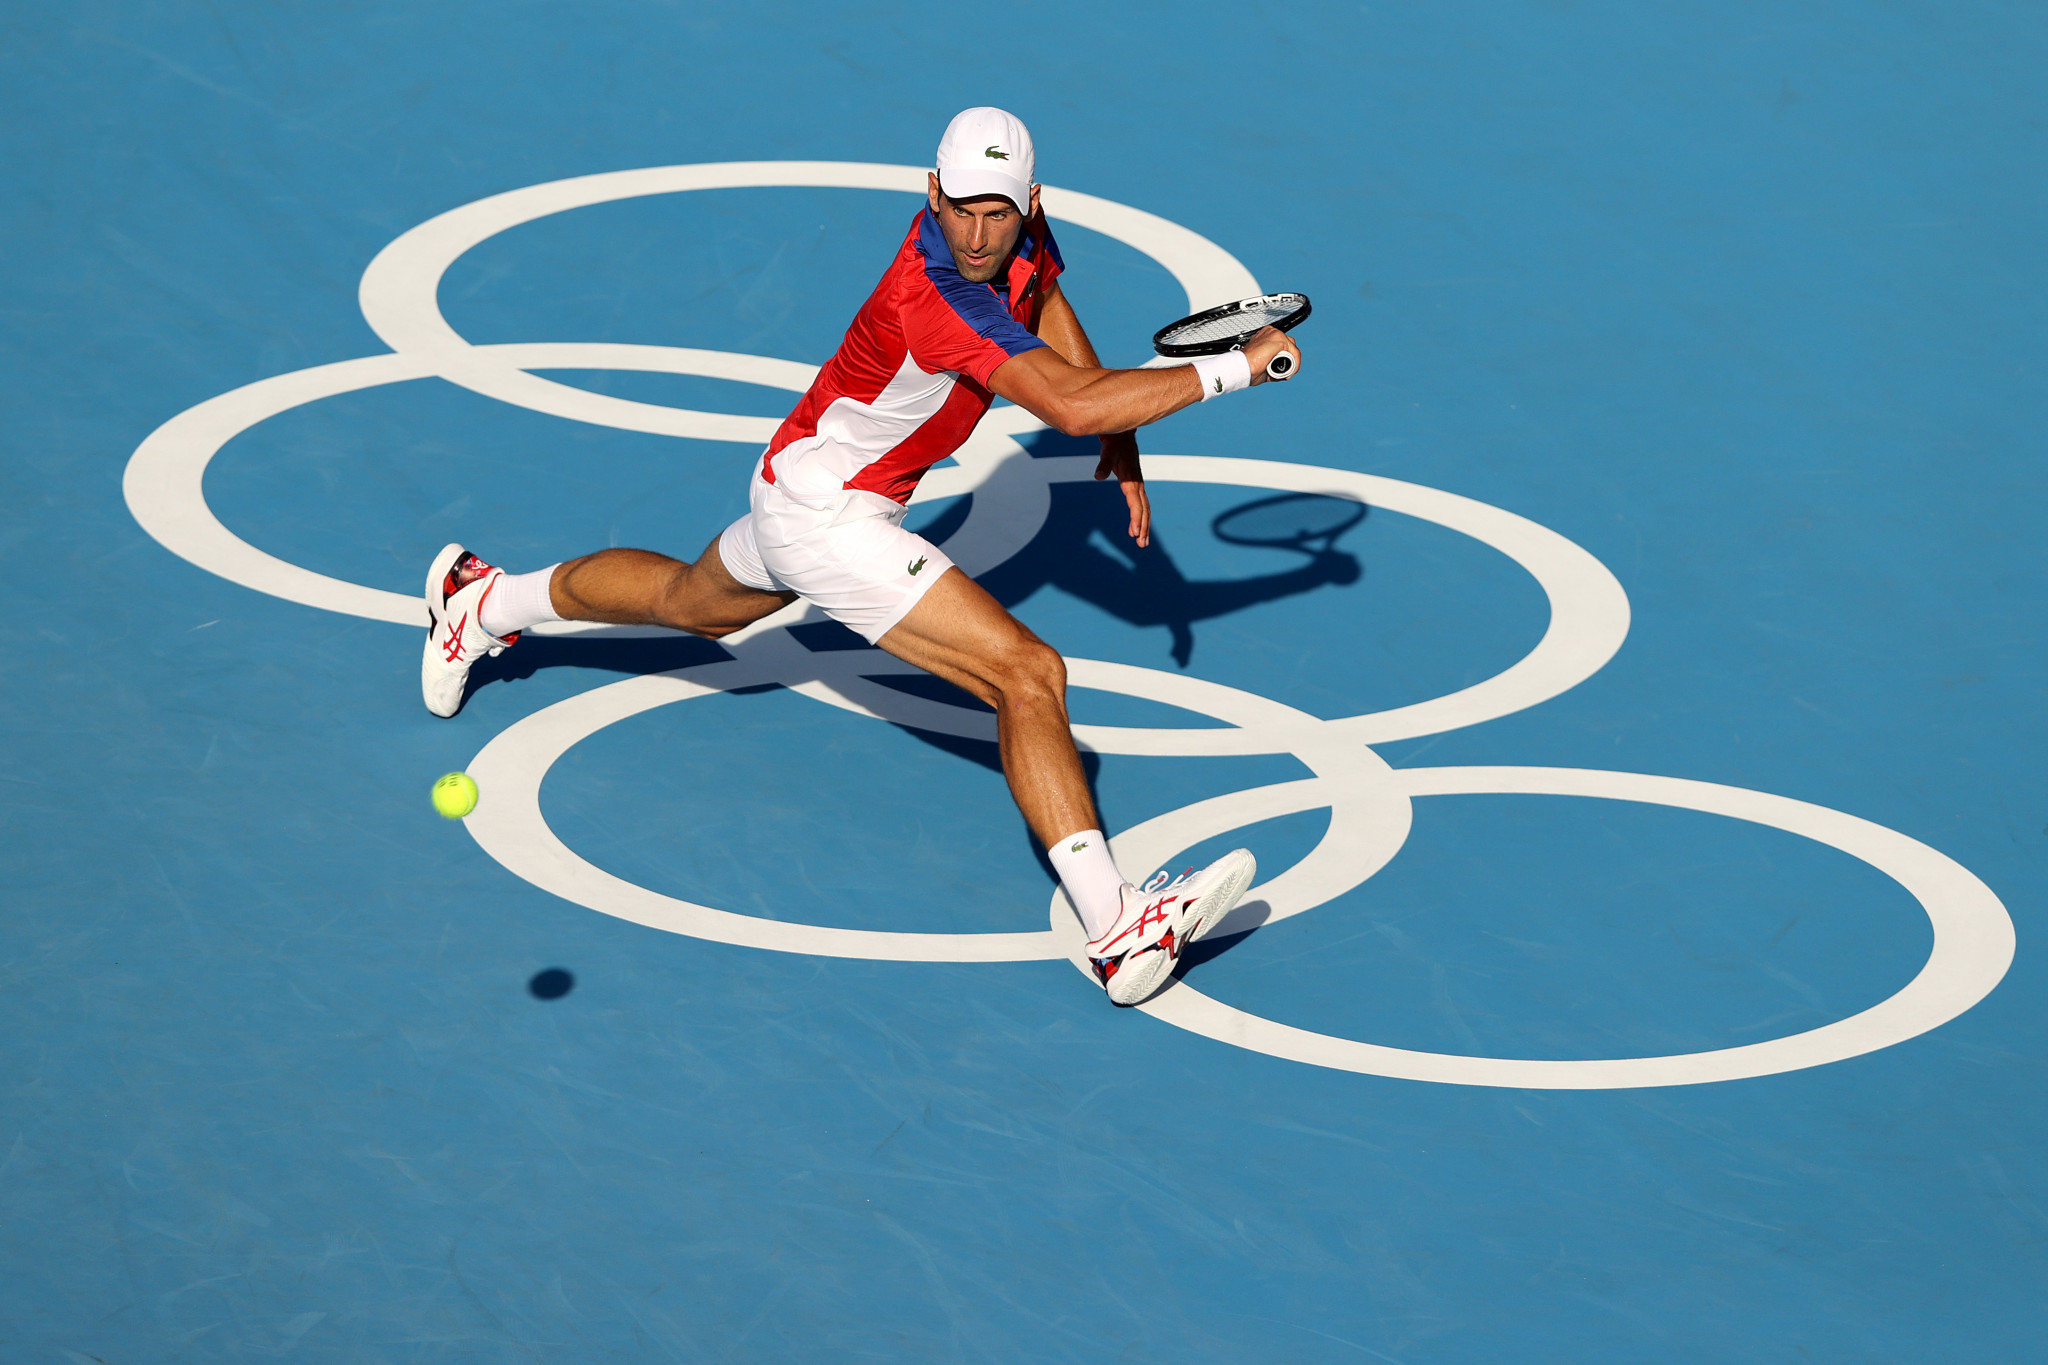 Novak Djokovic stretches to retrieve the ball as he began his quest for gold in the men's tennis tournament ©Getty Images